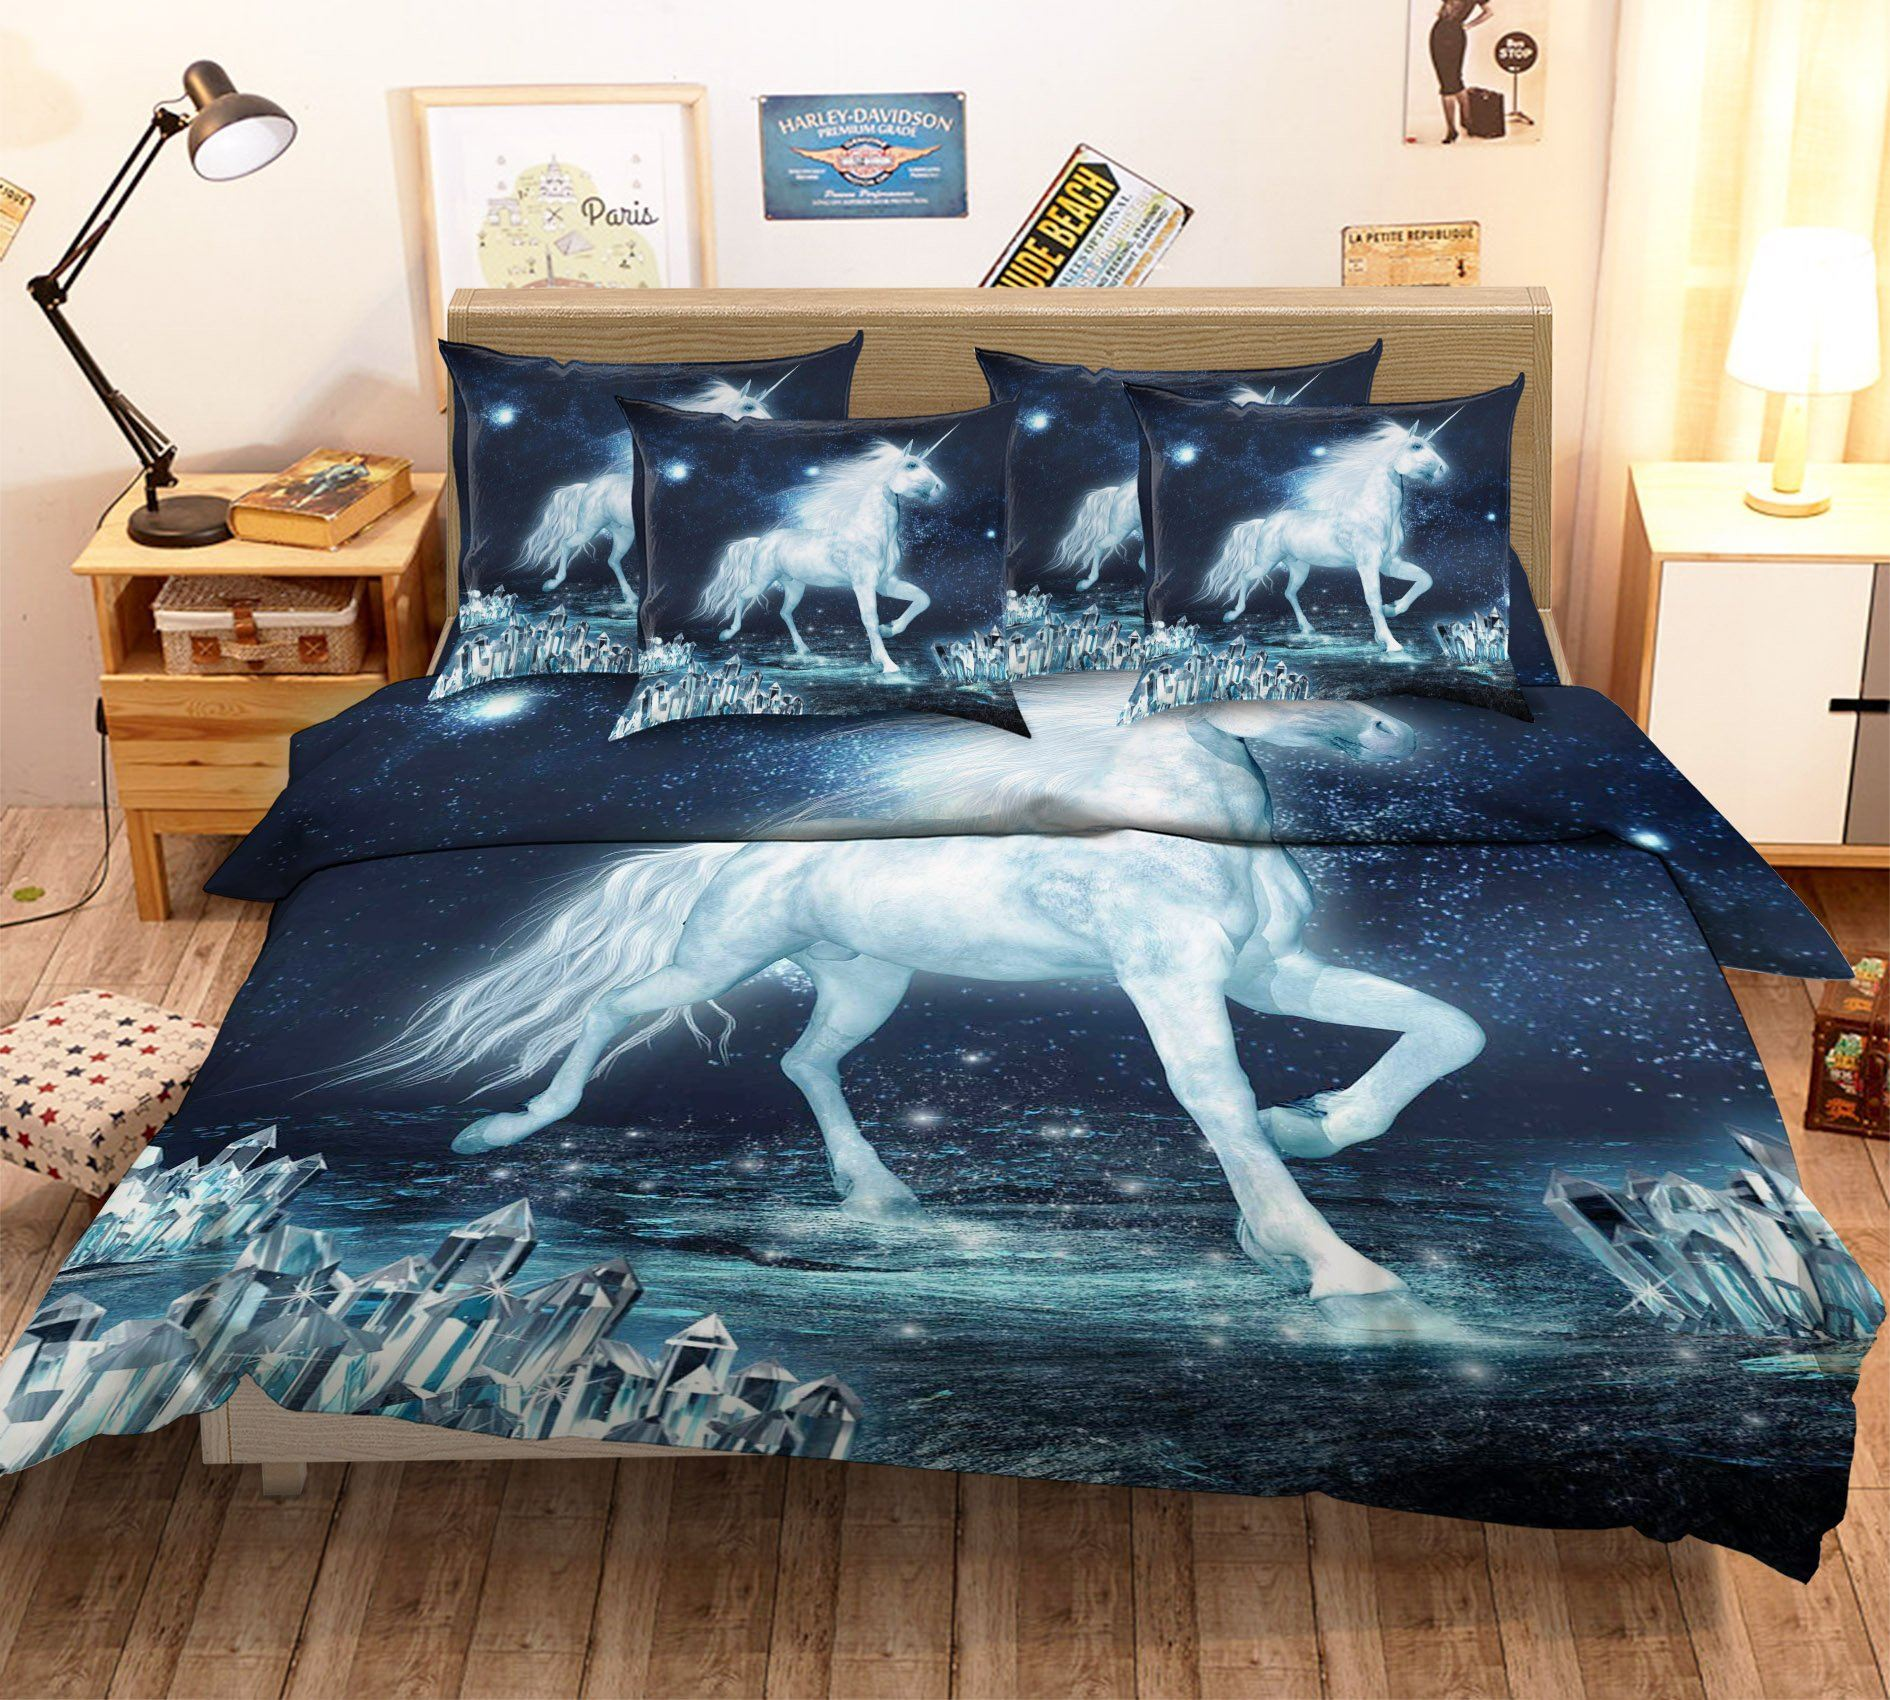 3D Dazzling Unicorn 109 Bed Pillowcases Quilt